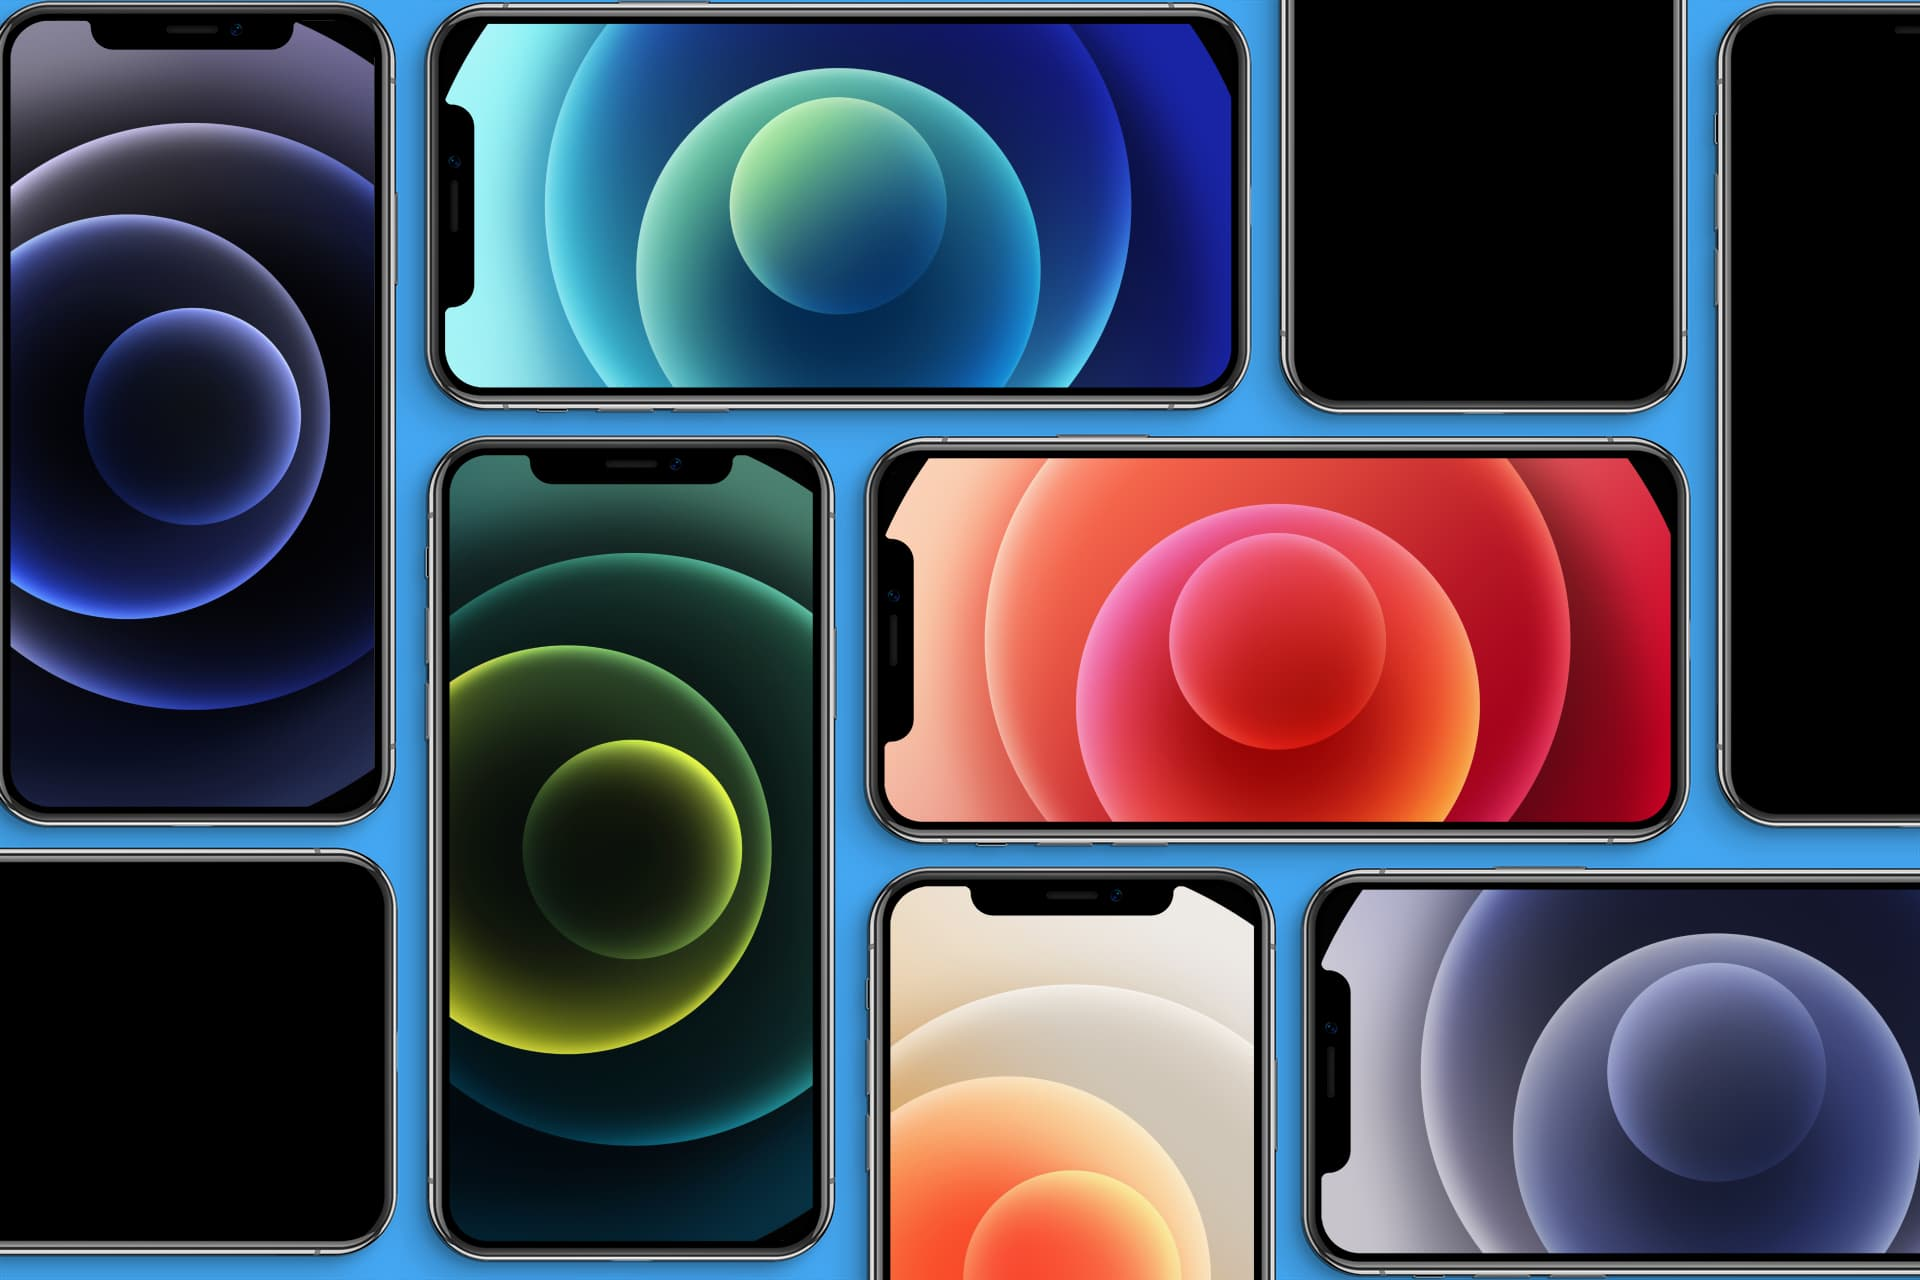 Wallpapers do iPhone 12